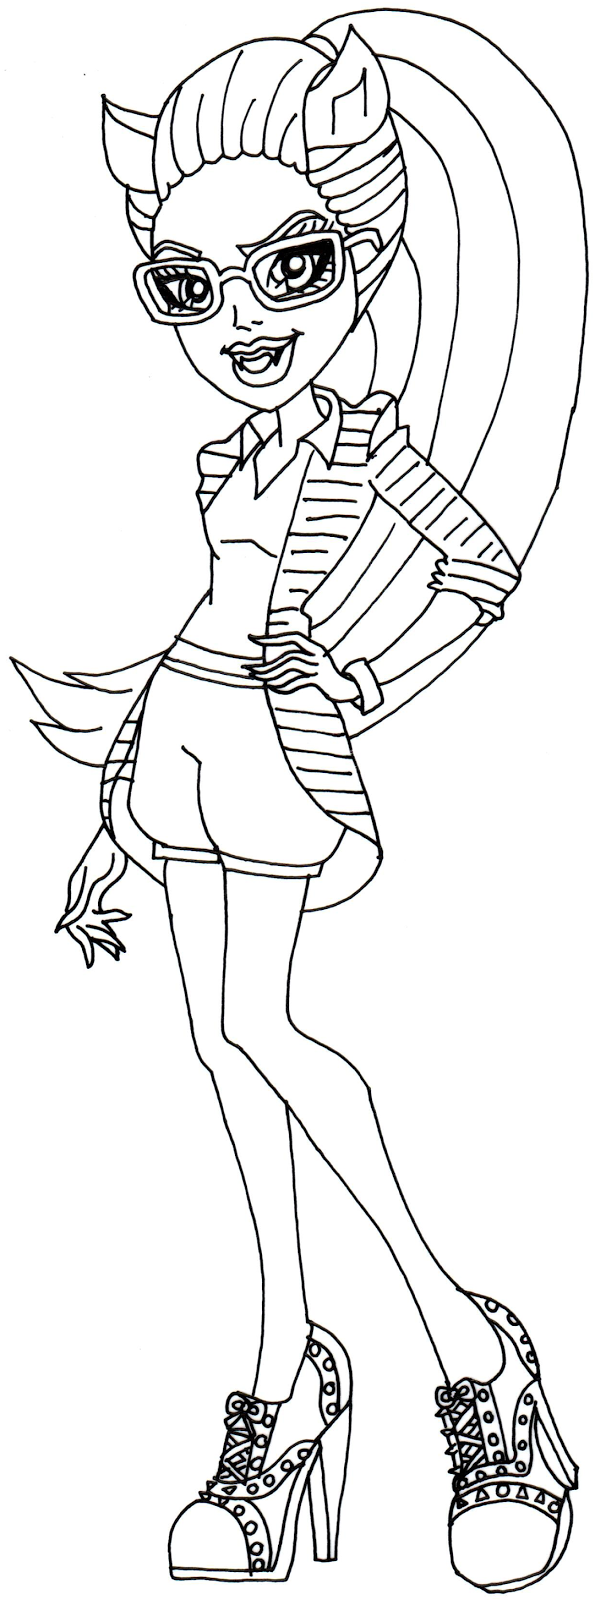 clawdia wolf coloring pages - photo#4